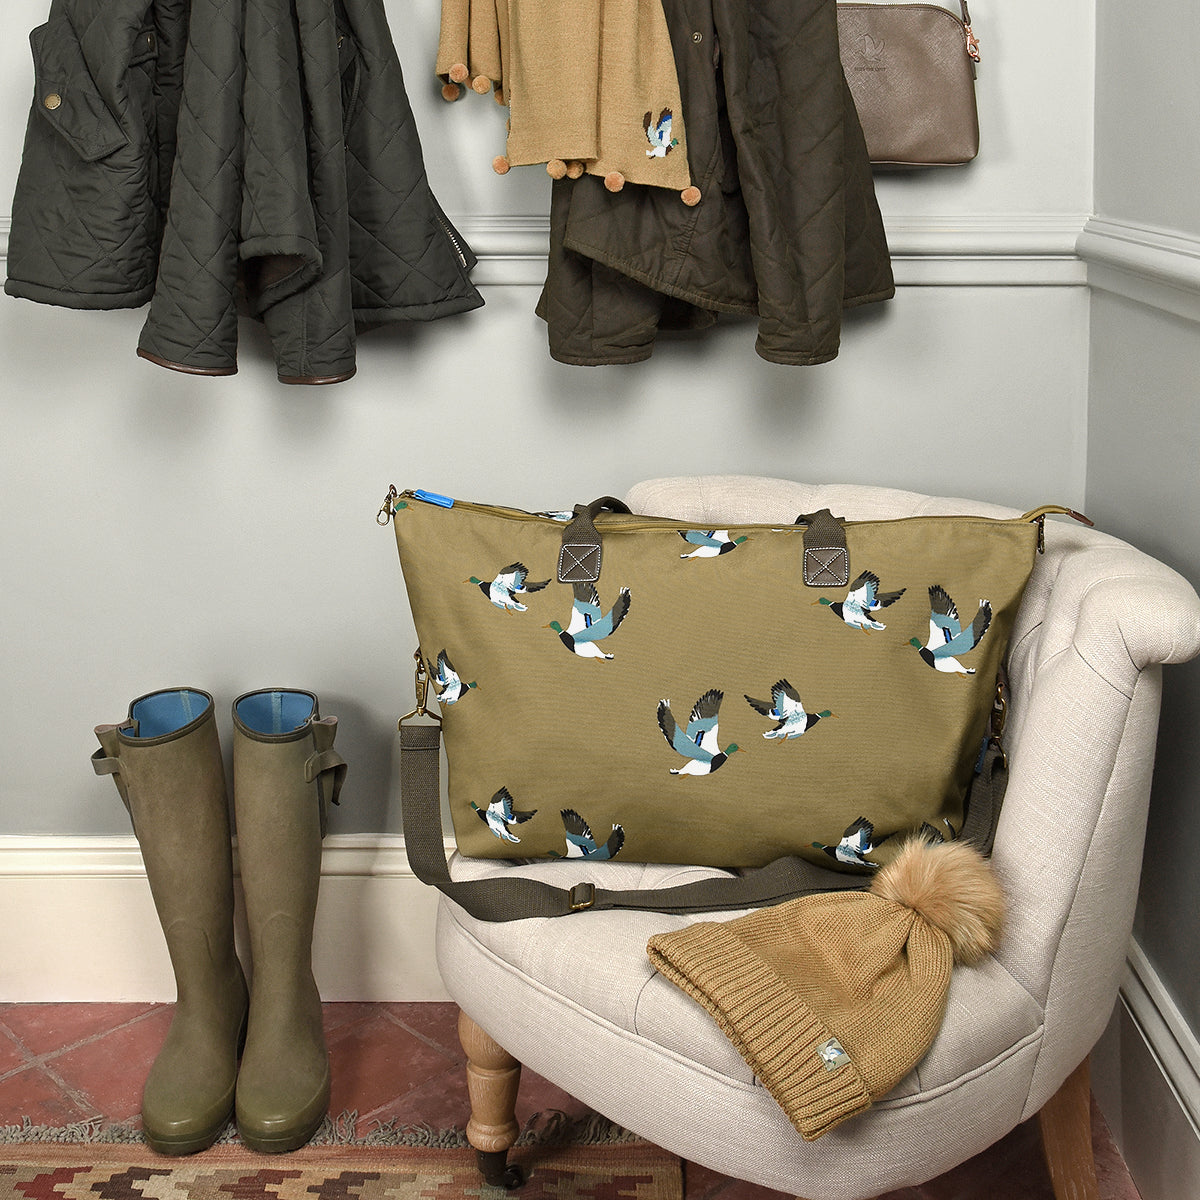 Ducks Weekend Oundle Bag by Sophie Allport